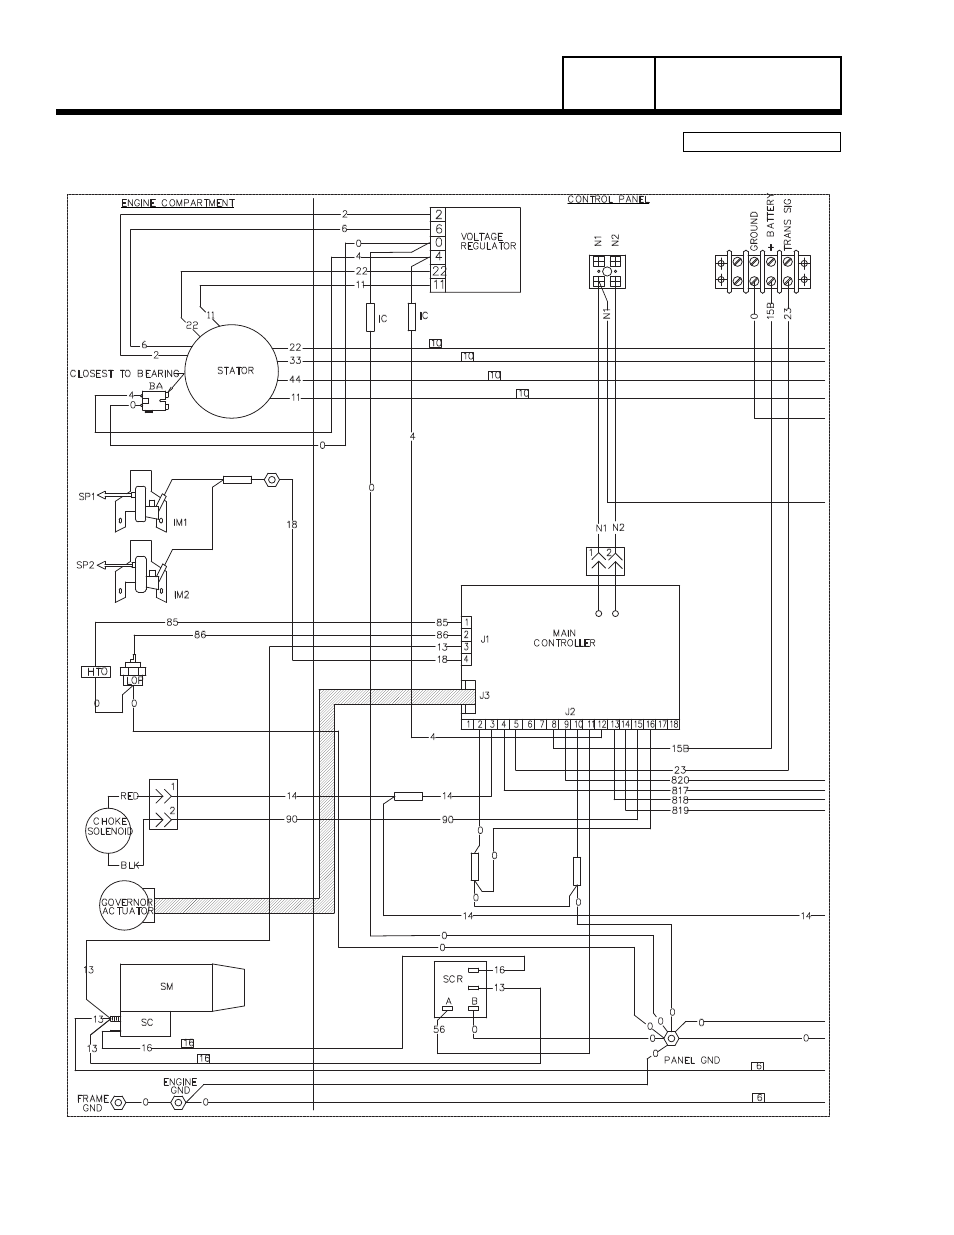 Wiring diagram 14 kw home standby Group g Part 7 Generac Power